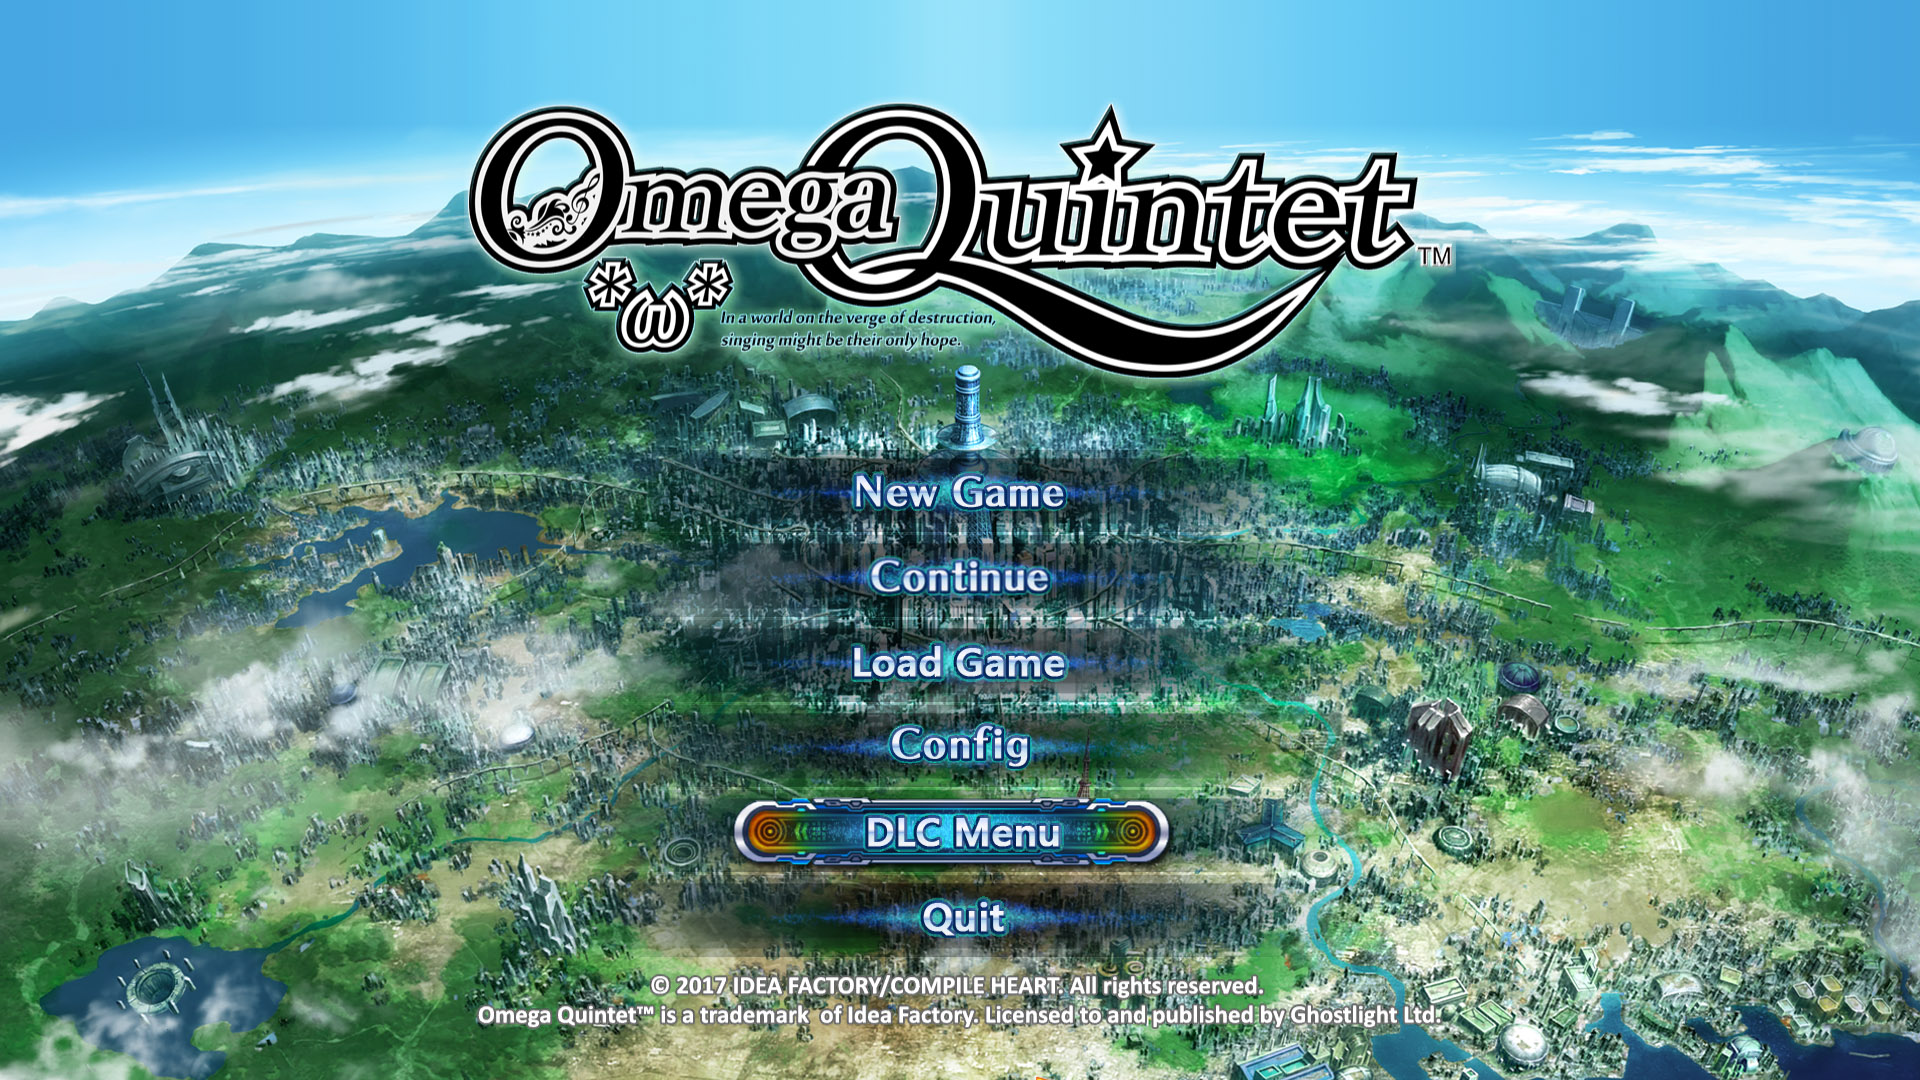 Omega Quintet - Potent Protection Pack 2017 pc game Img-3